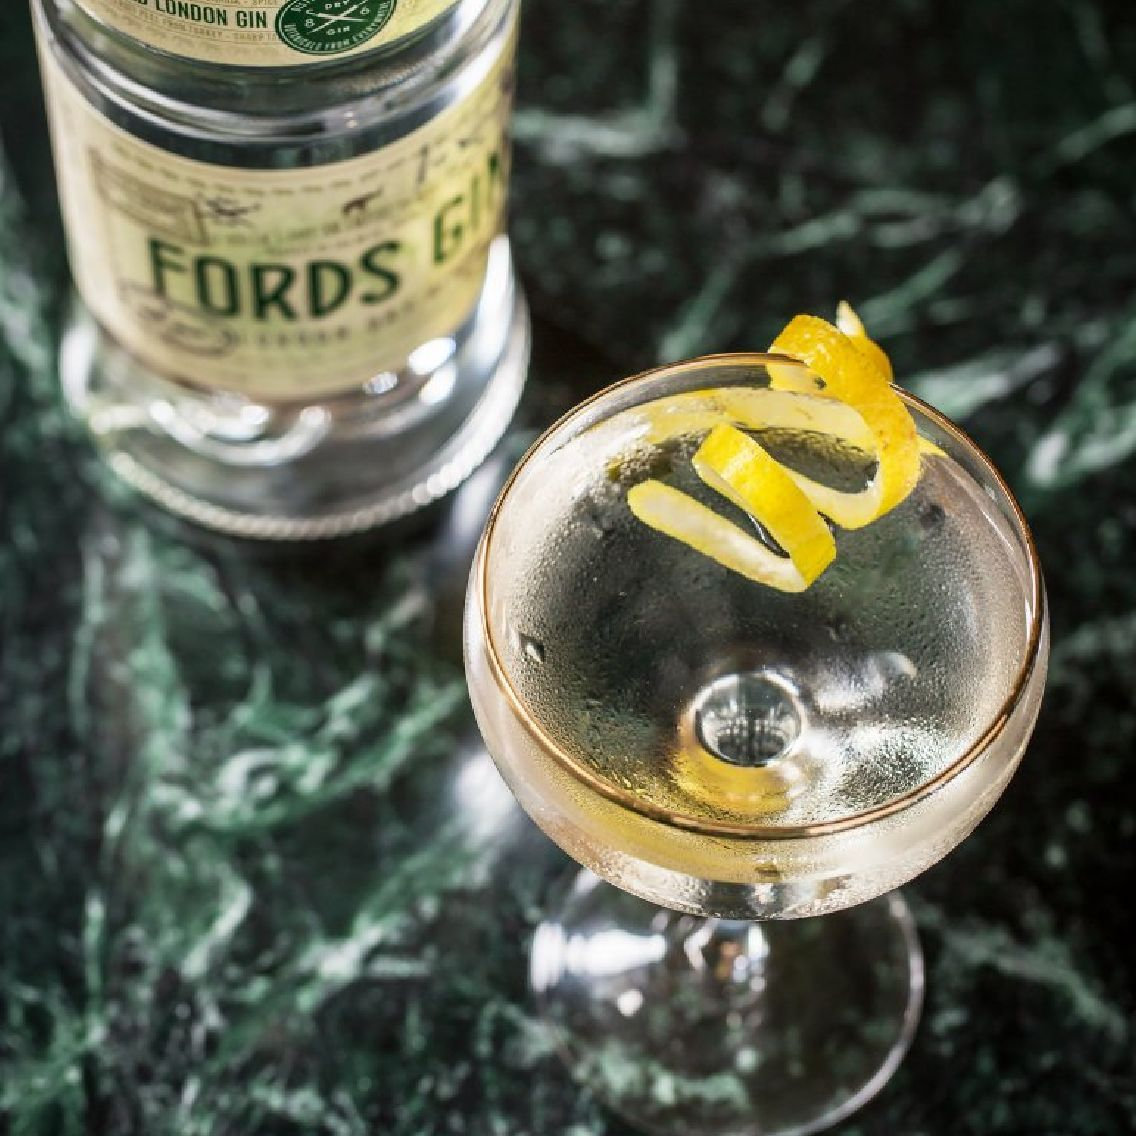 """Quite simply the king of cocktails, no drink has done more to push the cocktail into the limelight.  The image of a martini glass, punctuated with an olive, timelessly endures through film, art, and culture. A marriage of gin and vermouth, nobody is quite sure who first got them to say """"I do"""" in the late 1800s. Which gin? (we recommend Fords Gin) Which vermouth? How much gin, how much vermouth? Bitters? Which garnish? What glass? The most personal of cocktails. Everybody has (or should have) an opinion on how to make the perfect martini."""